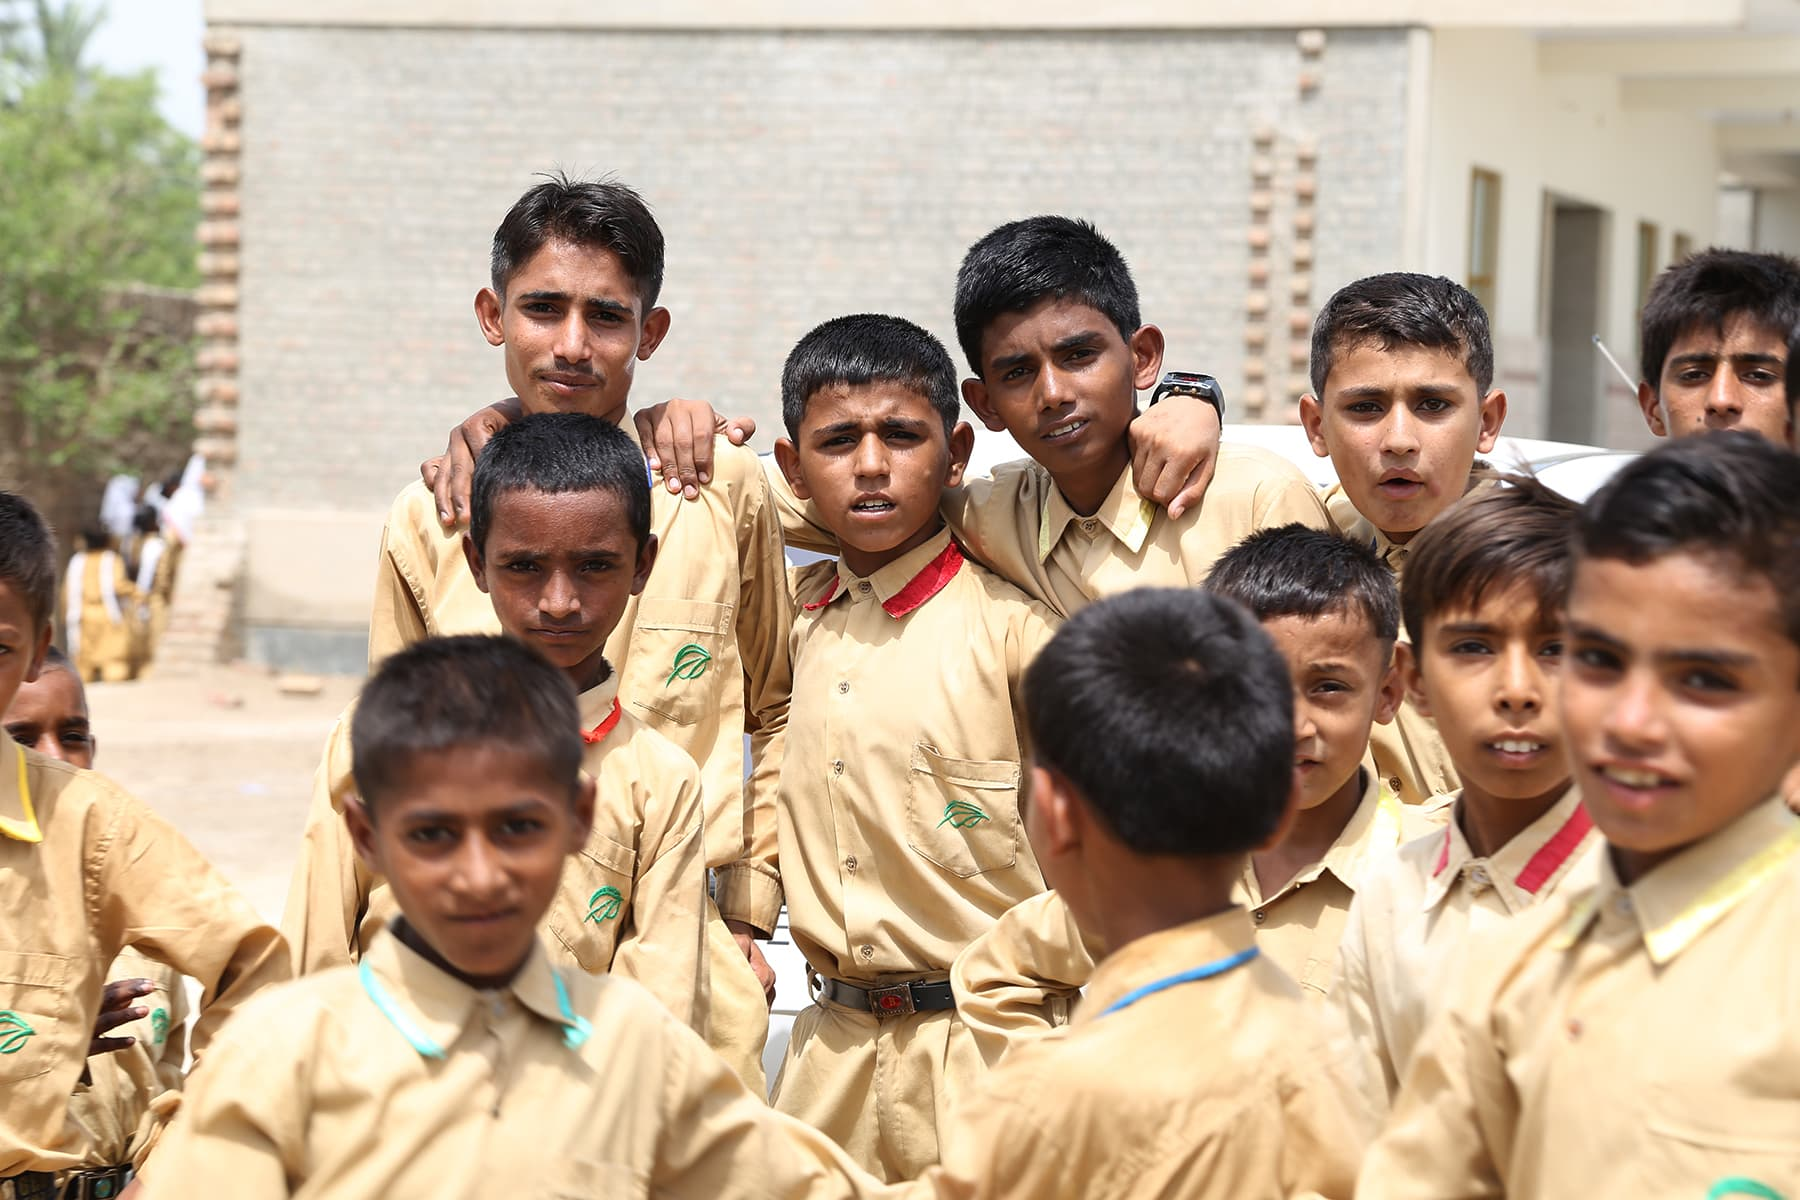 Students at the Gambat TCF school pose for a picture - Photo by Mustafa Ilyas